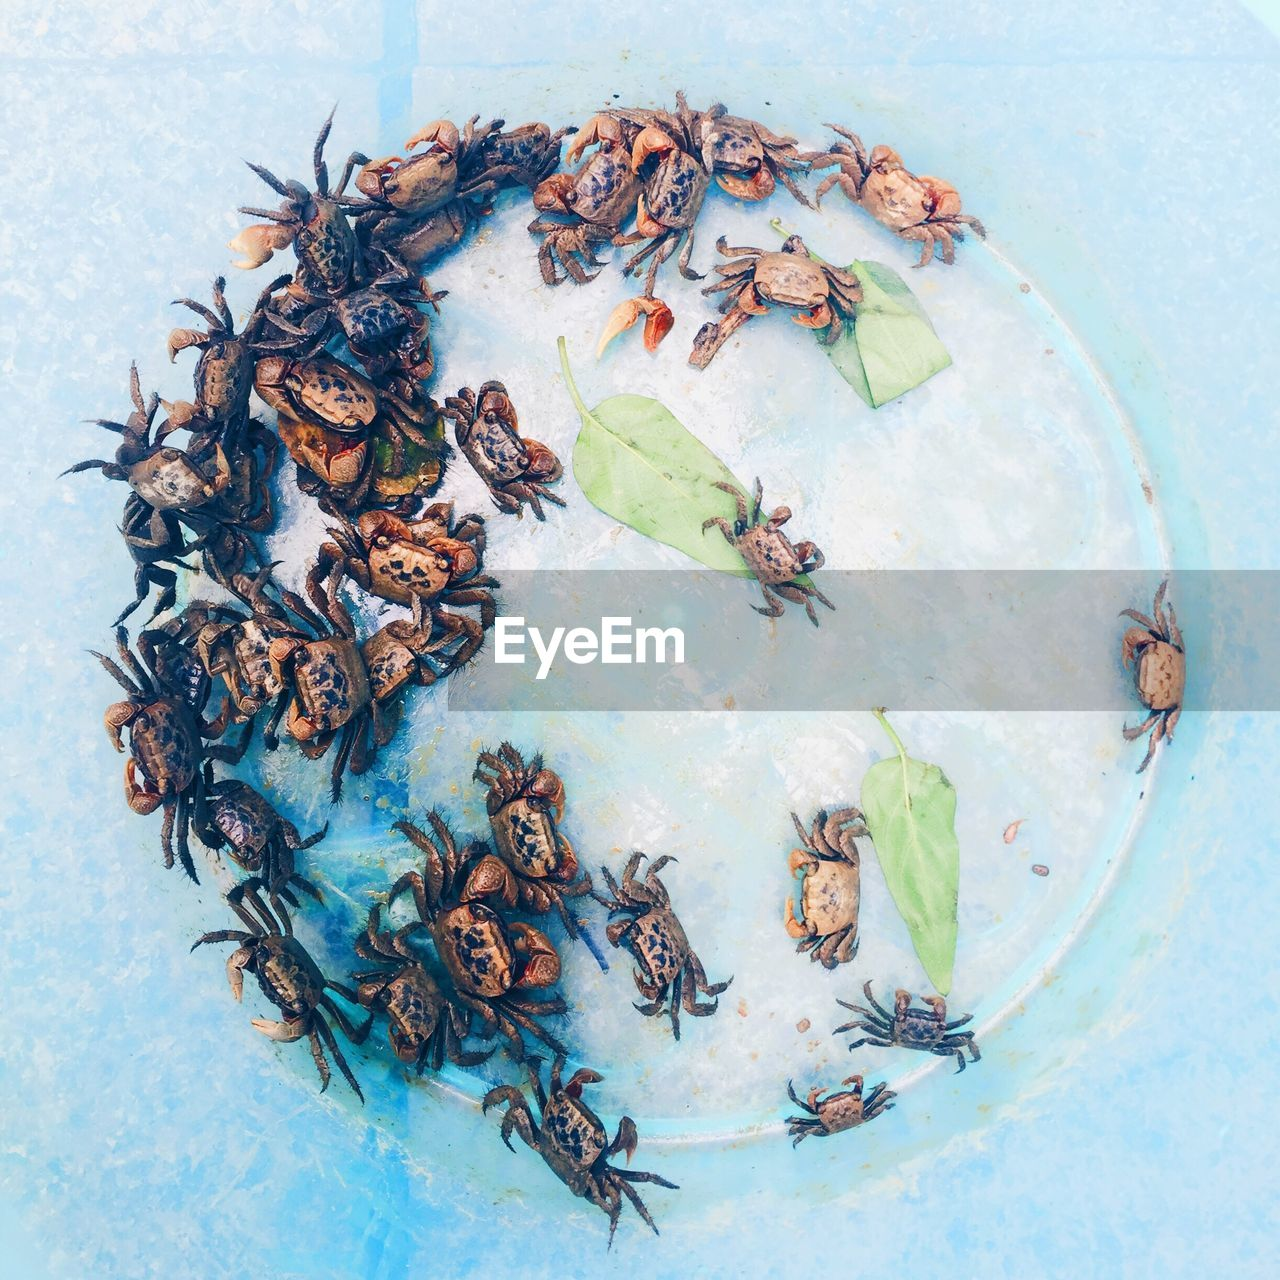 High Angle View Of Crabs In Container